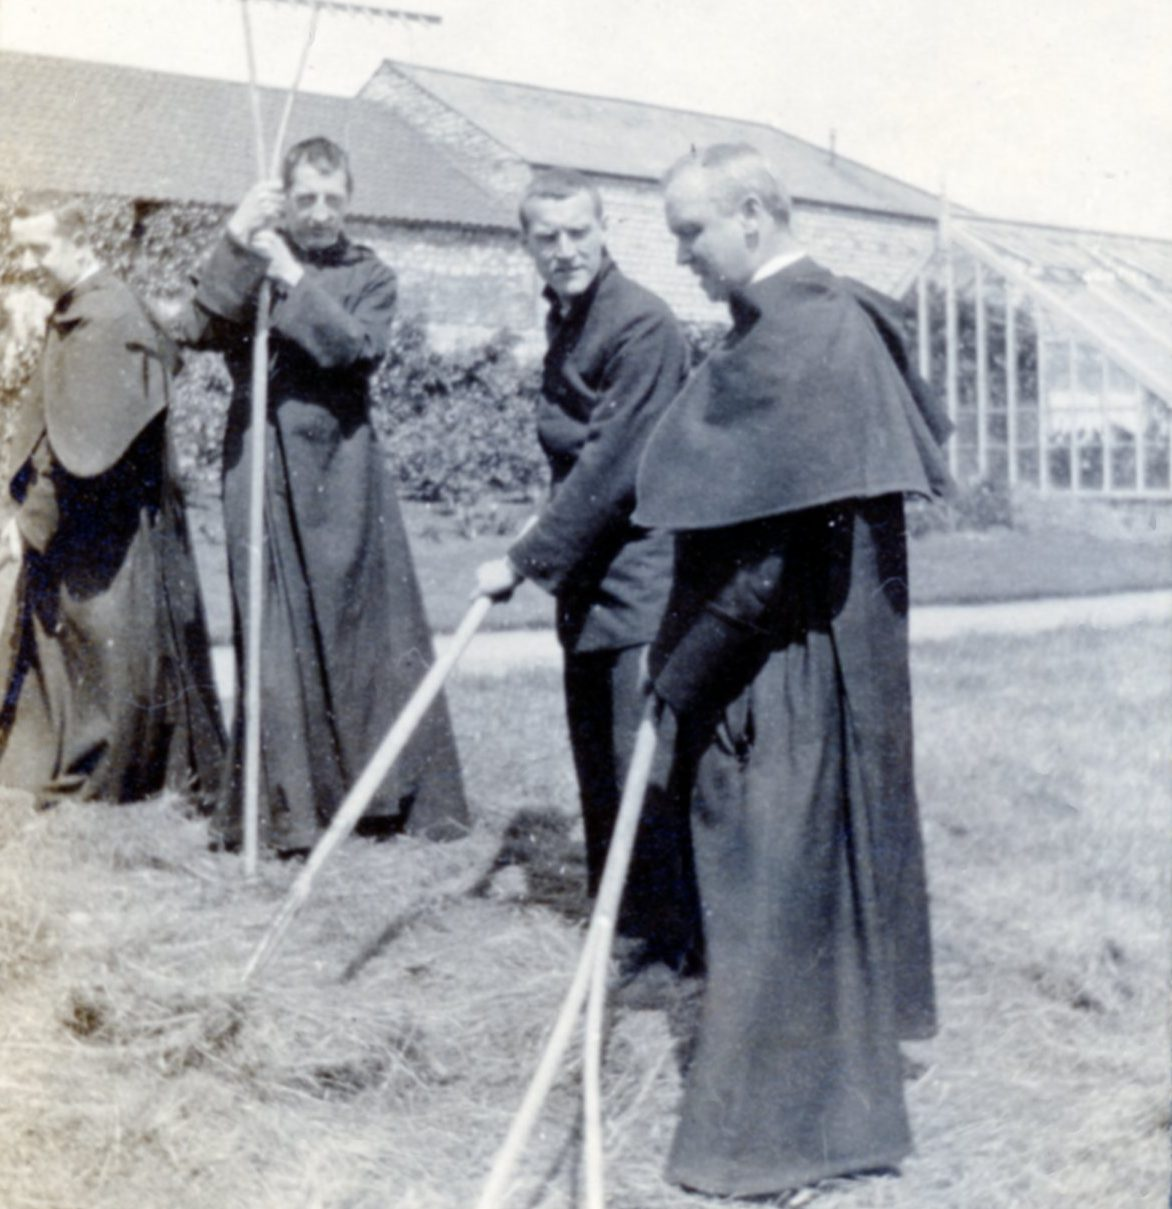 Old image of monks raking hay